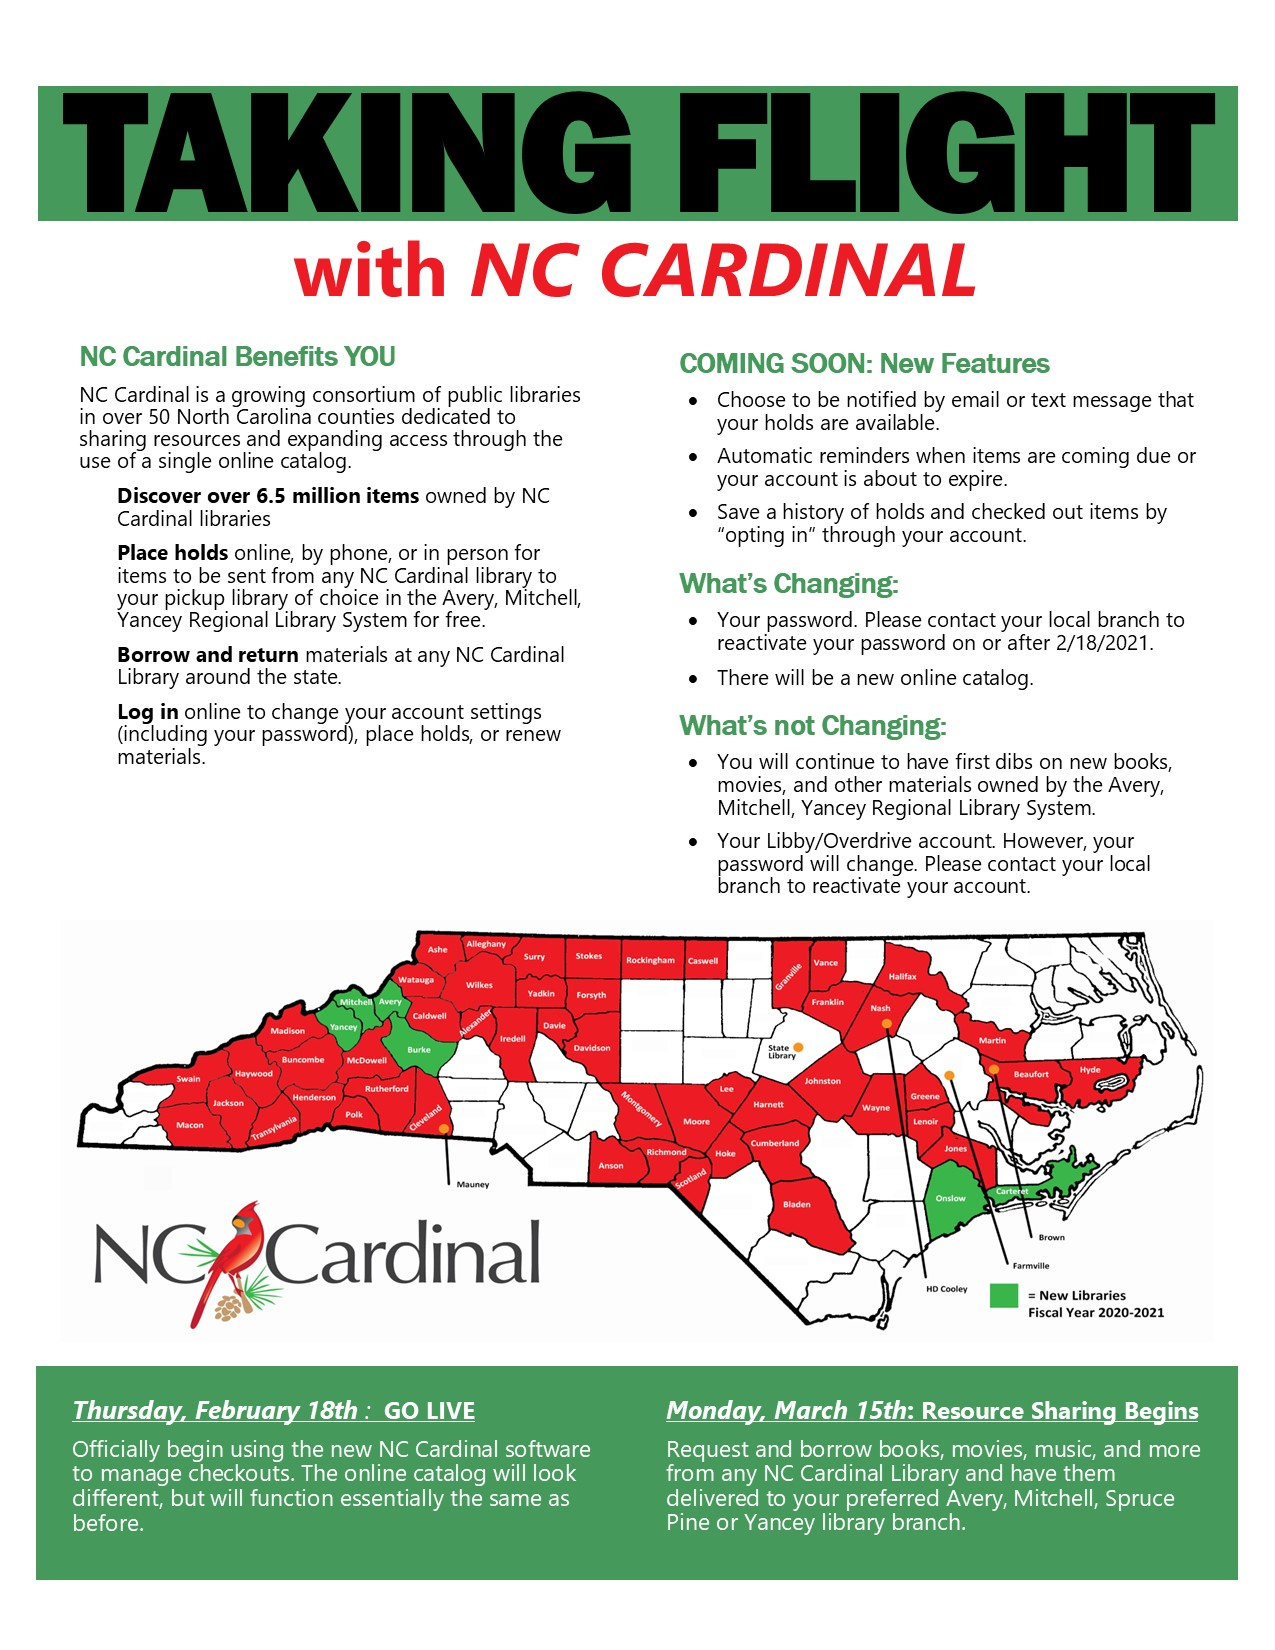 Explains what a patron can or can't do within NC Cardinal